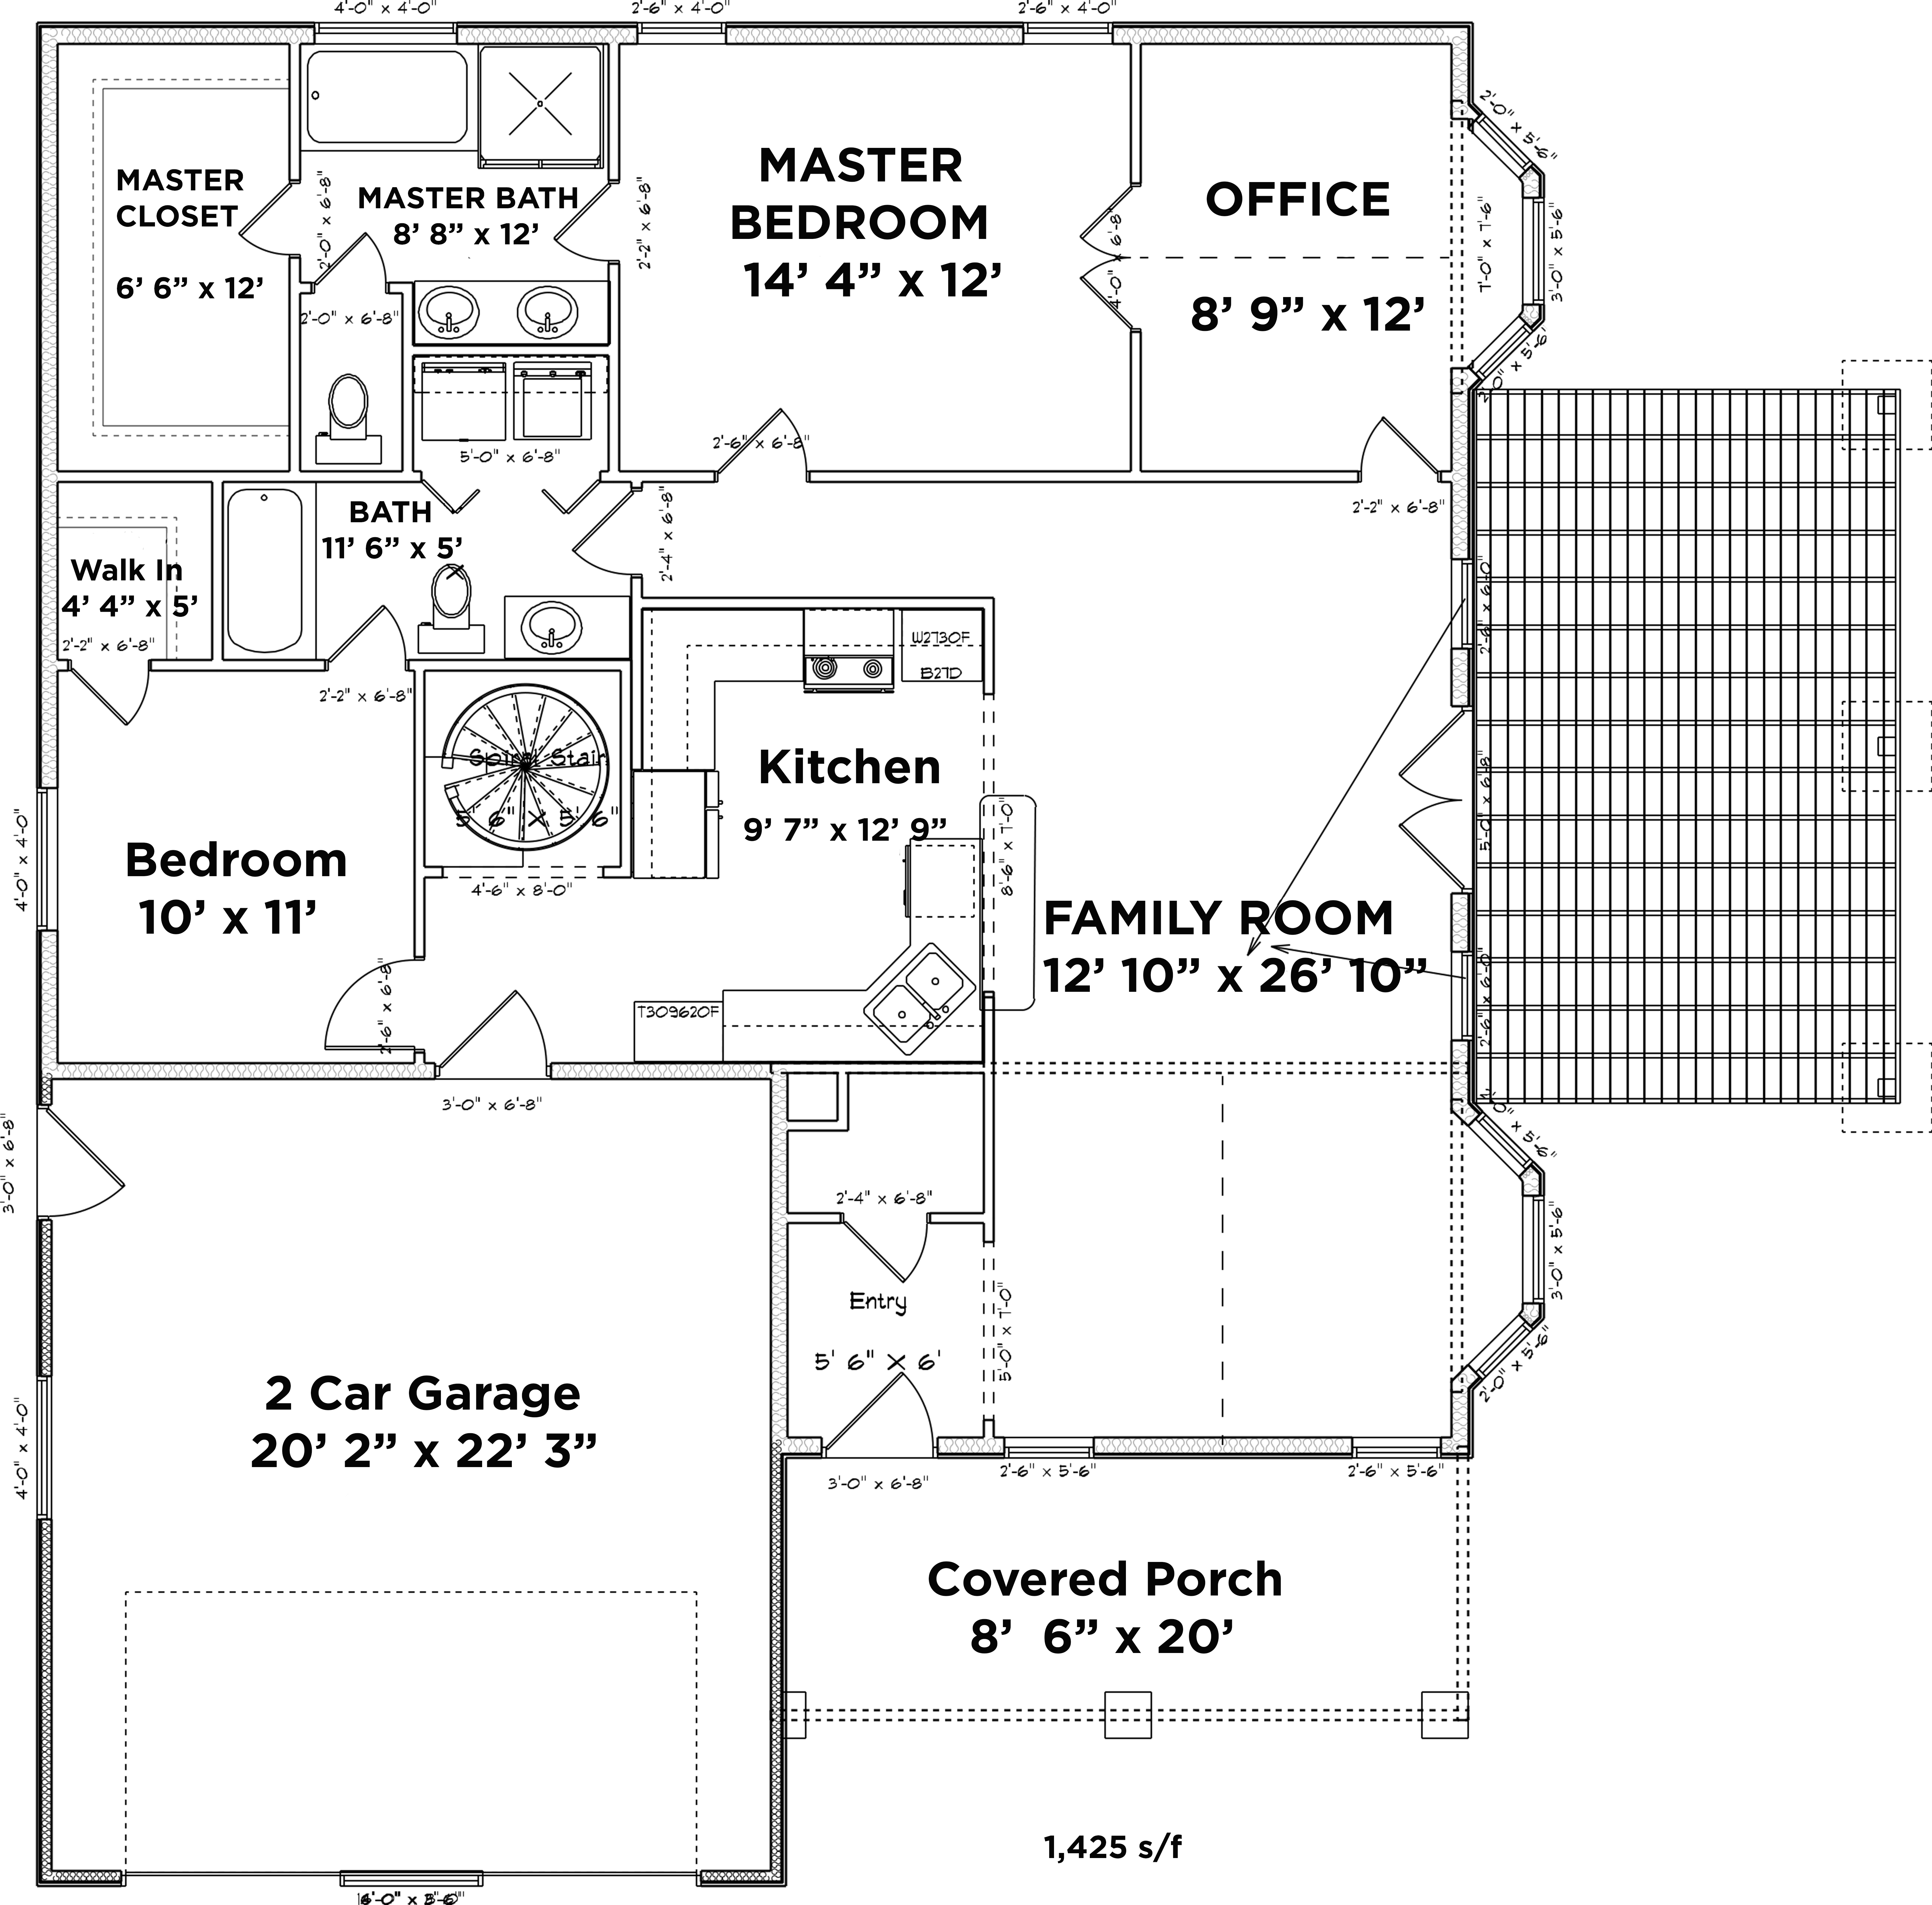 House plan 187 1120 5 bdrm 1 833 sq ft traditional home for 1120 westchester place floor plan